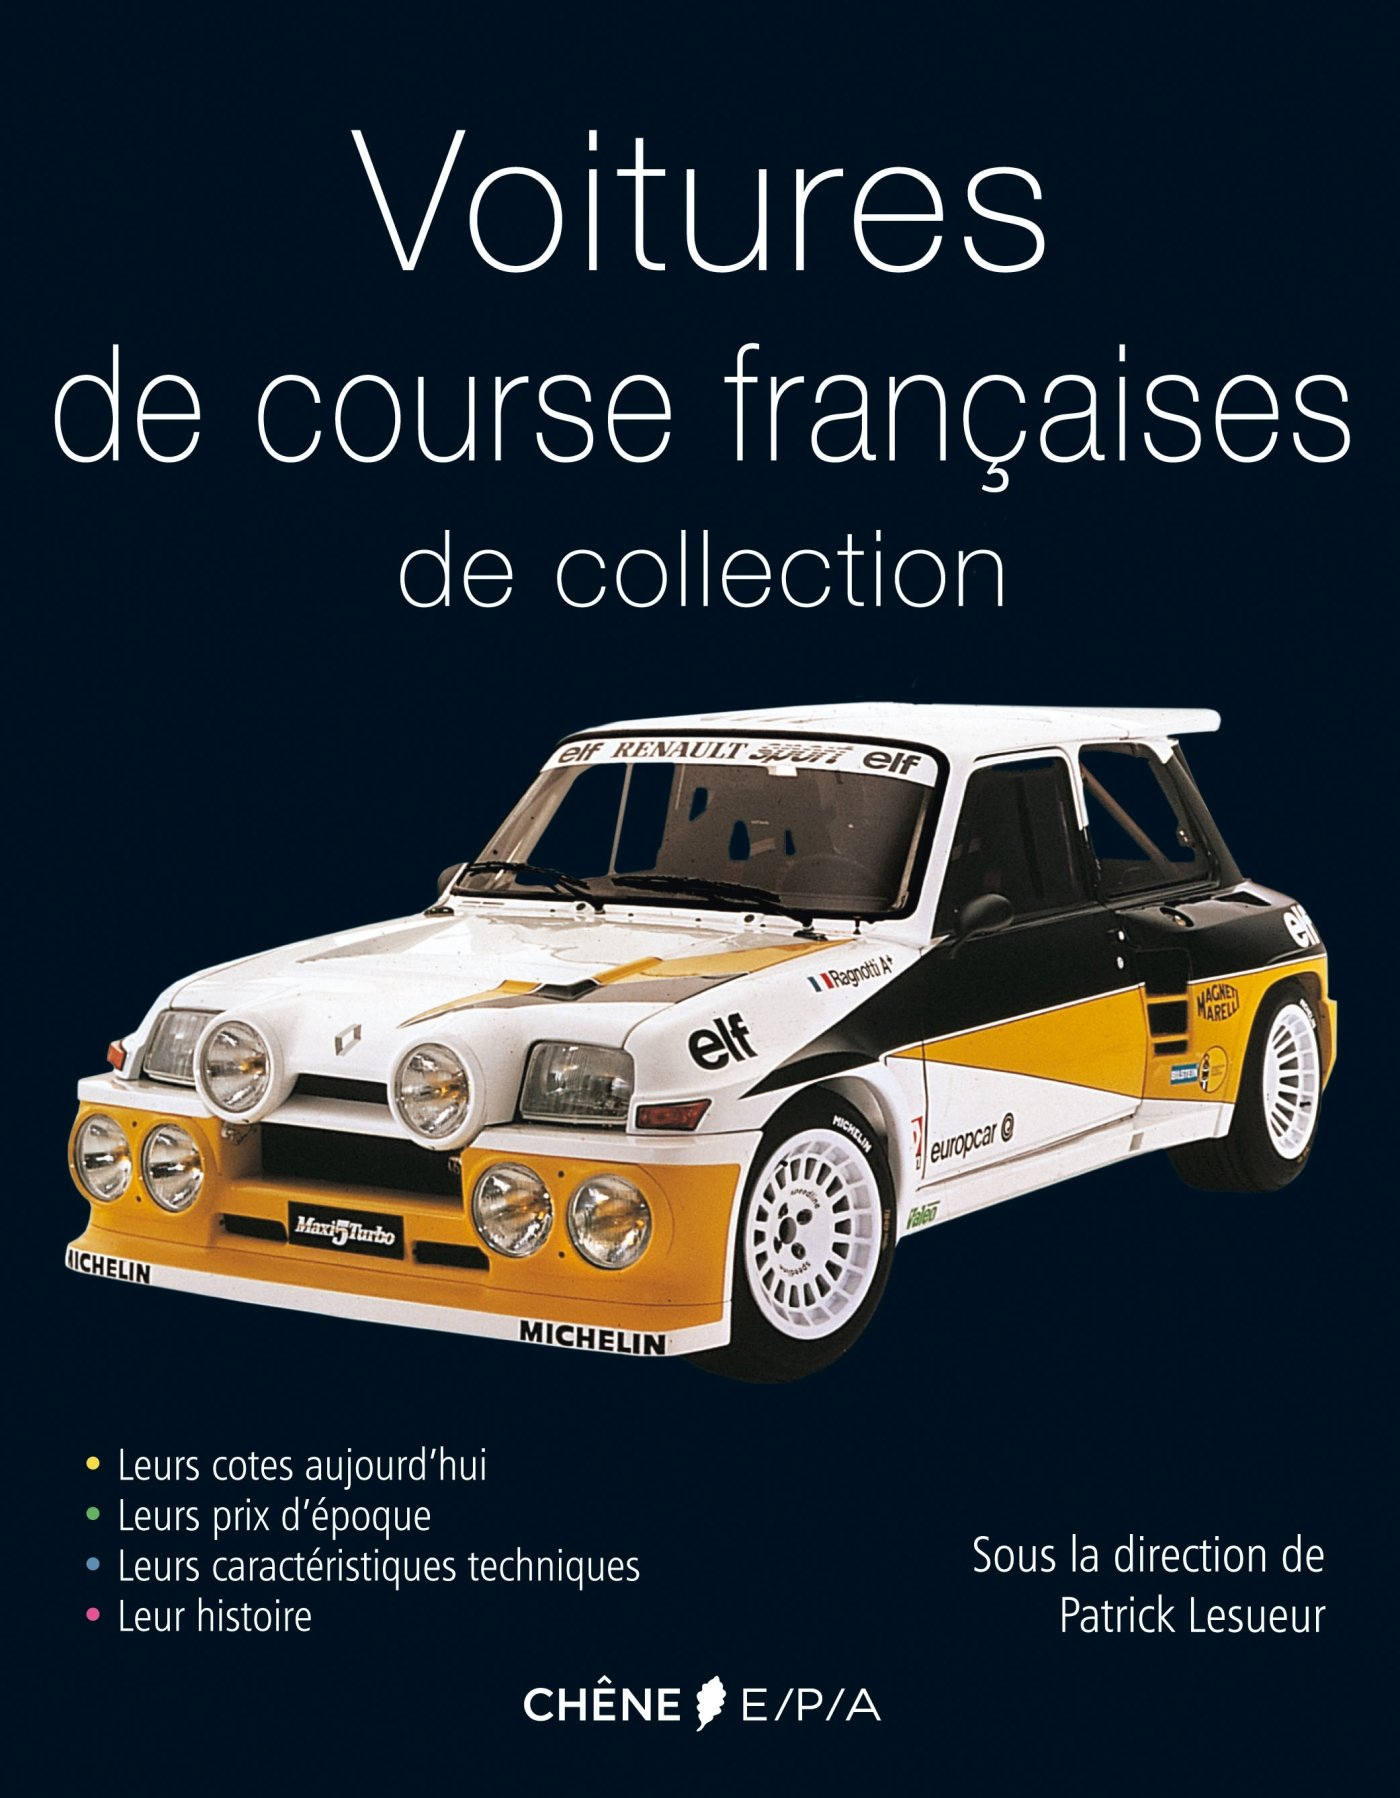 Voitures de course françaises de collection: 9782851207814: Amazon.com: Books